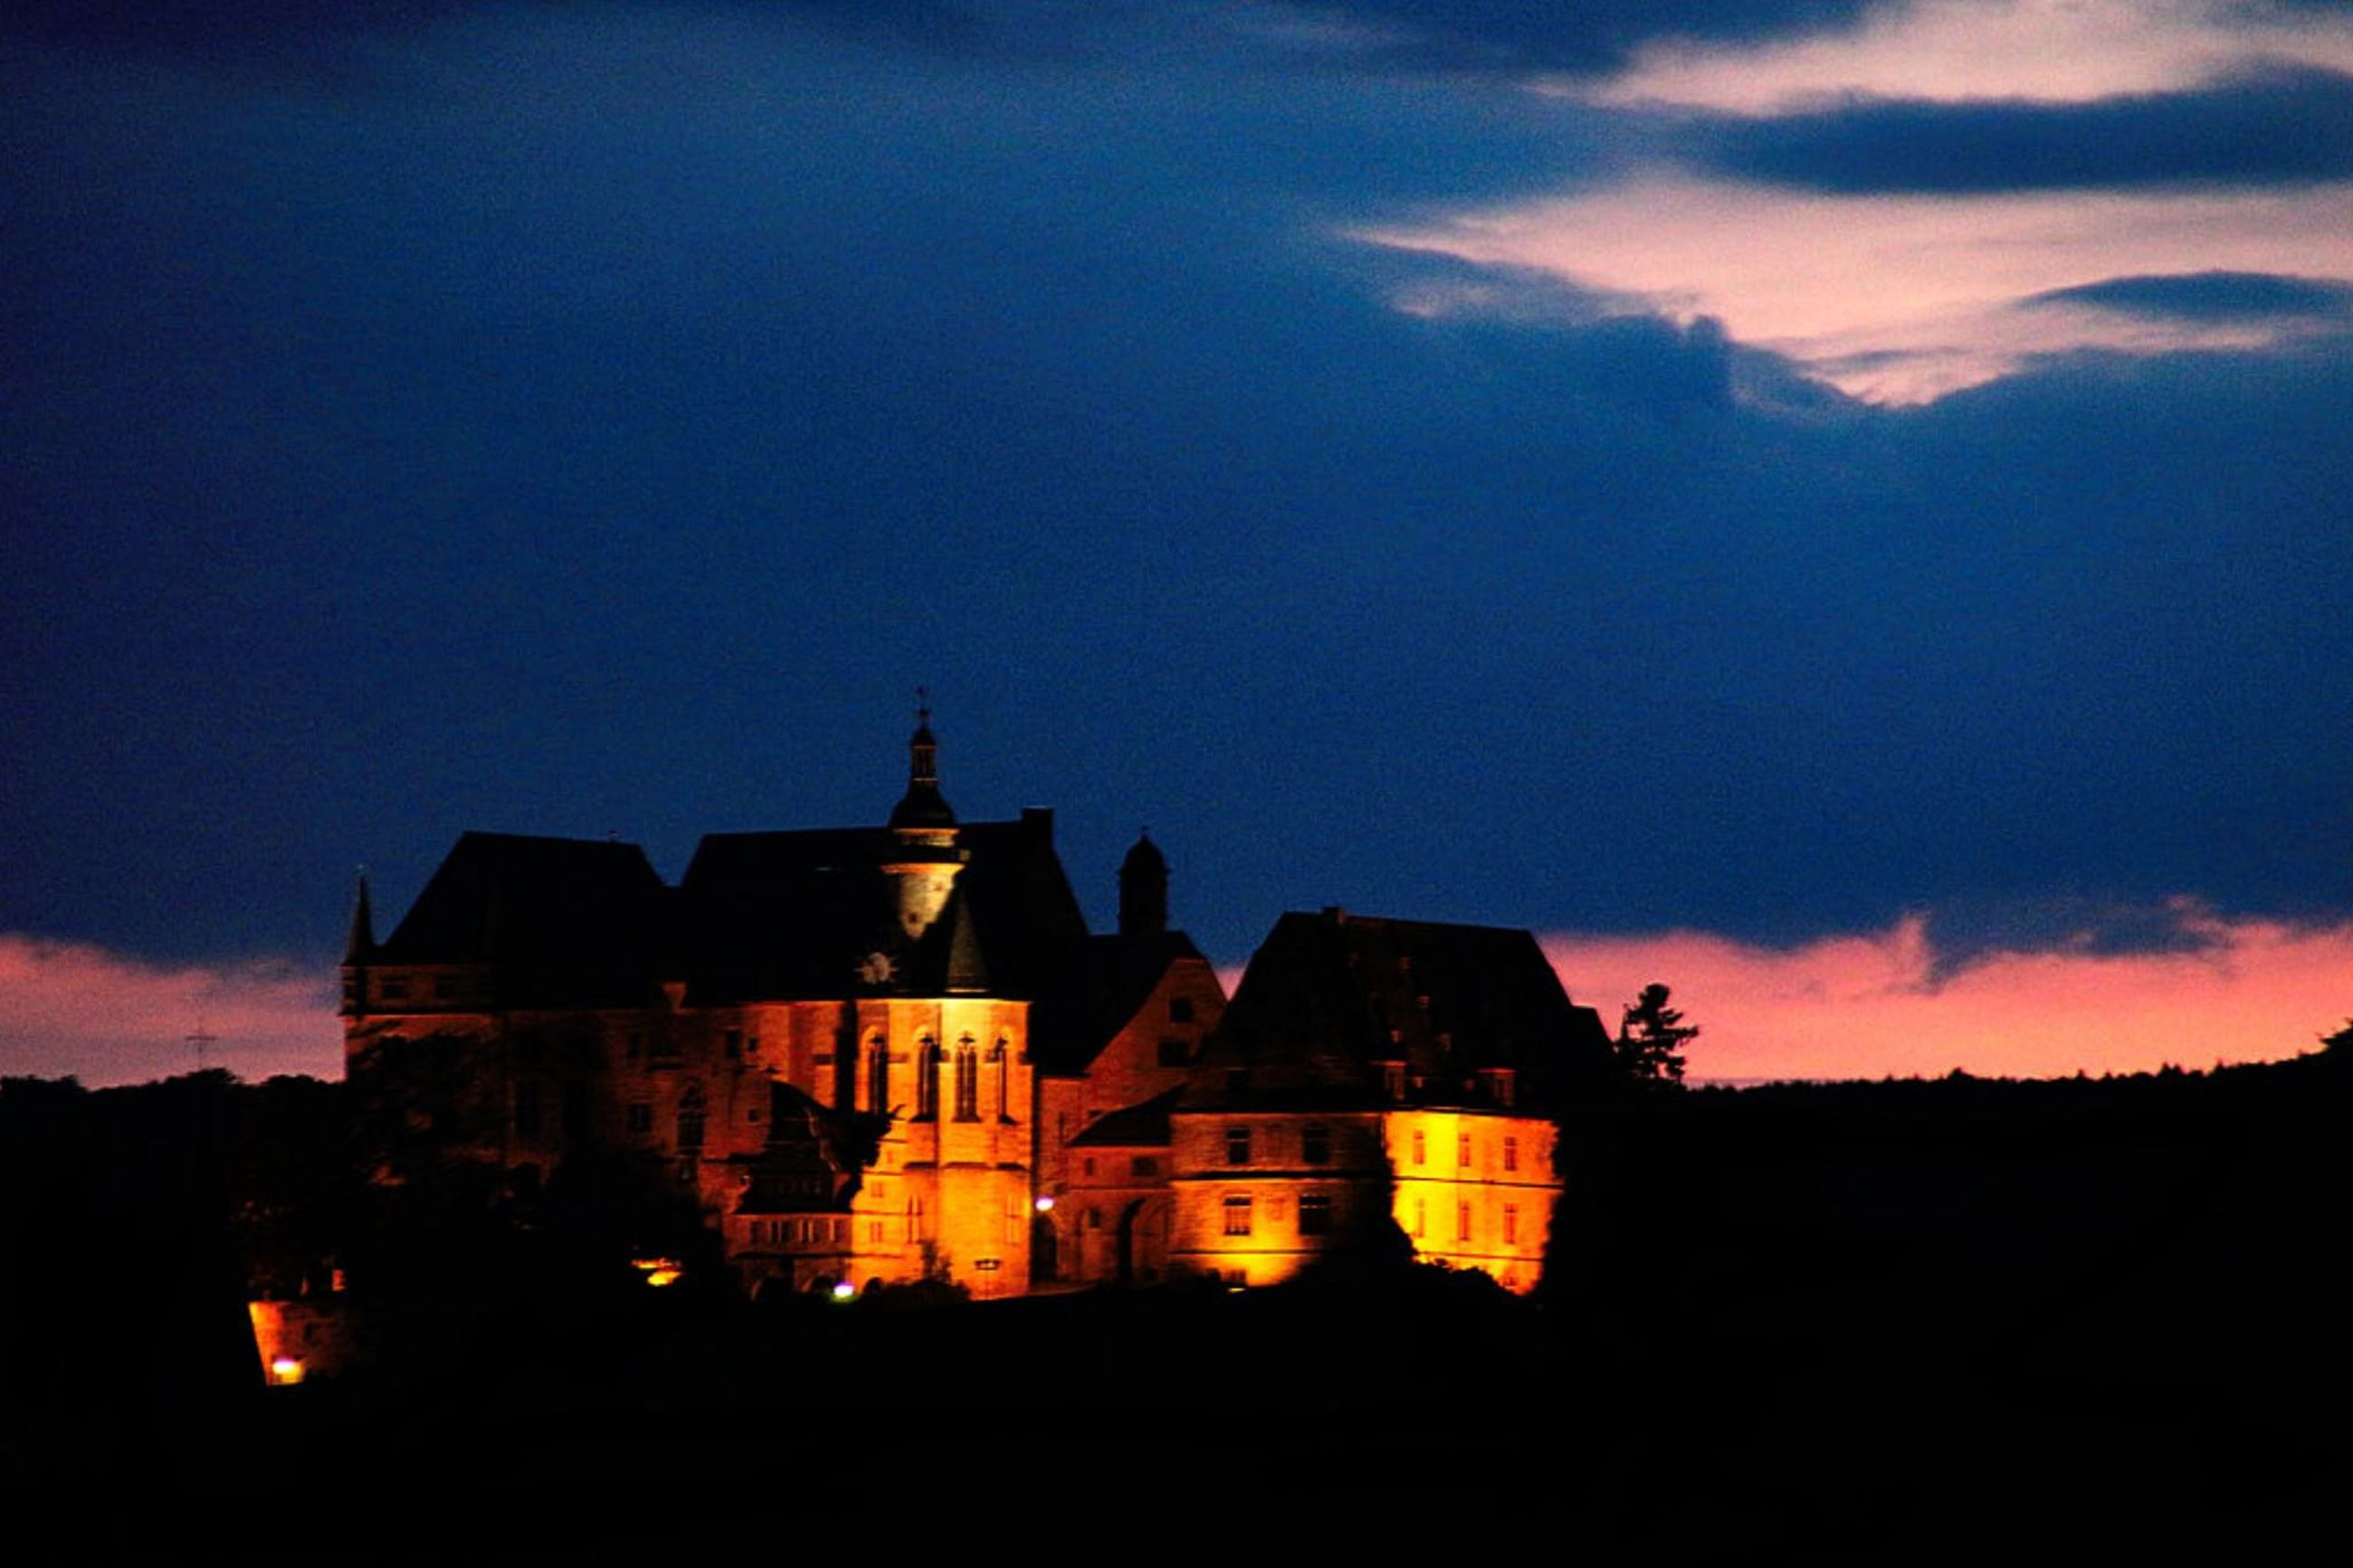 architecture, built structure, building exterior, sunset, silhouette, sky, place of worship, church, cloud - sky, religion, spirituality, dusk, house, low angle view, orange color, outdoors, dark, cloud, no people